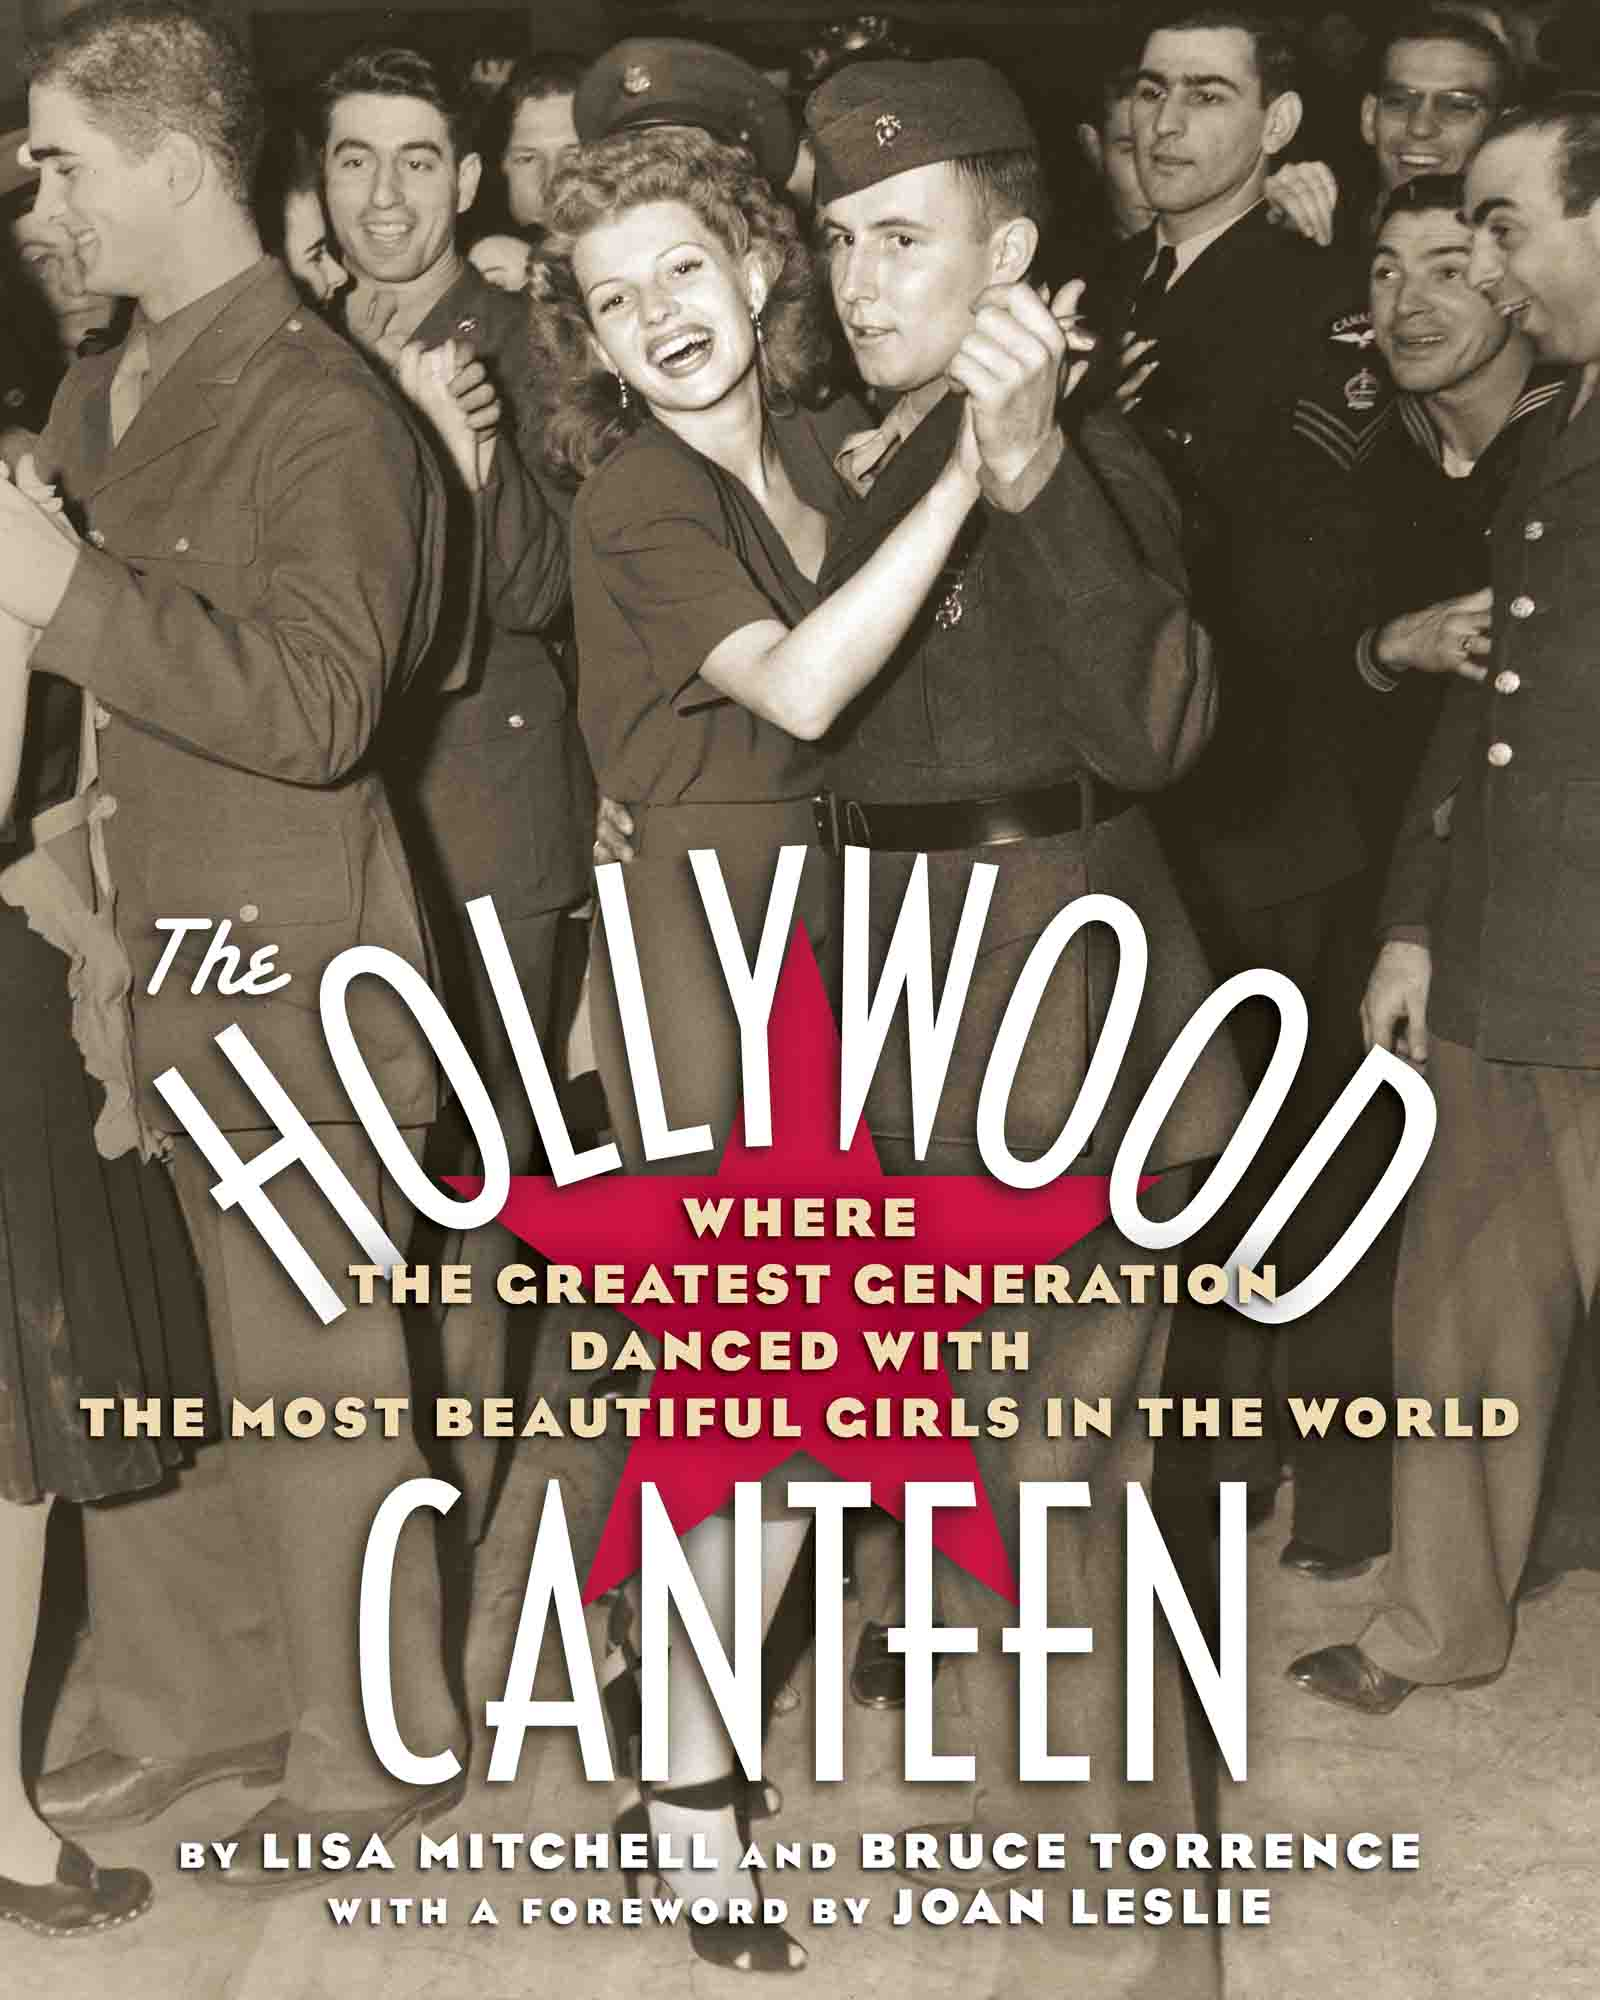 The Hollywood Canteen Book